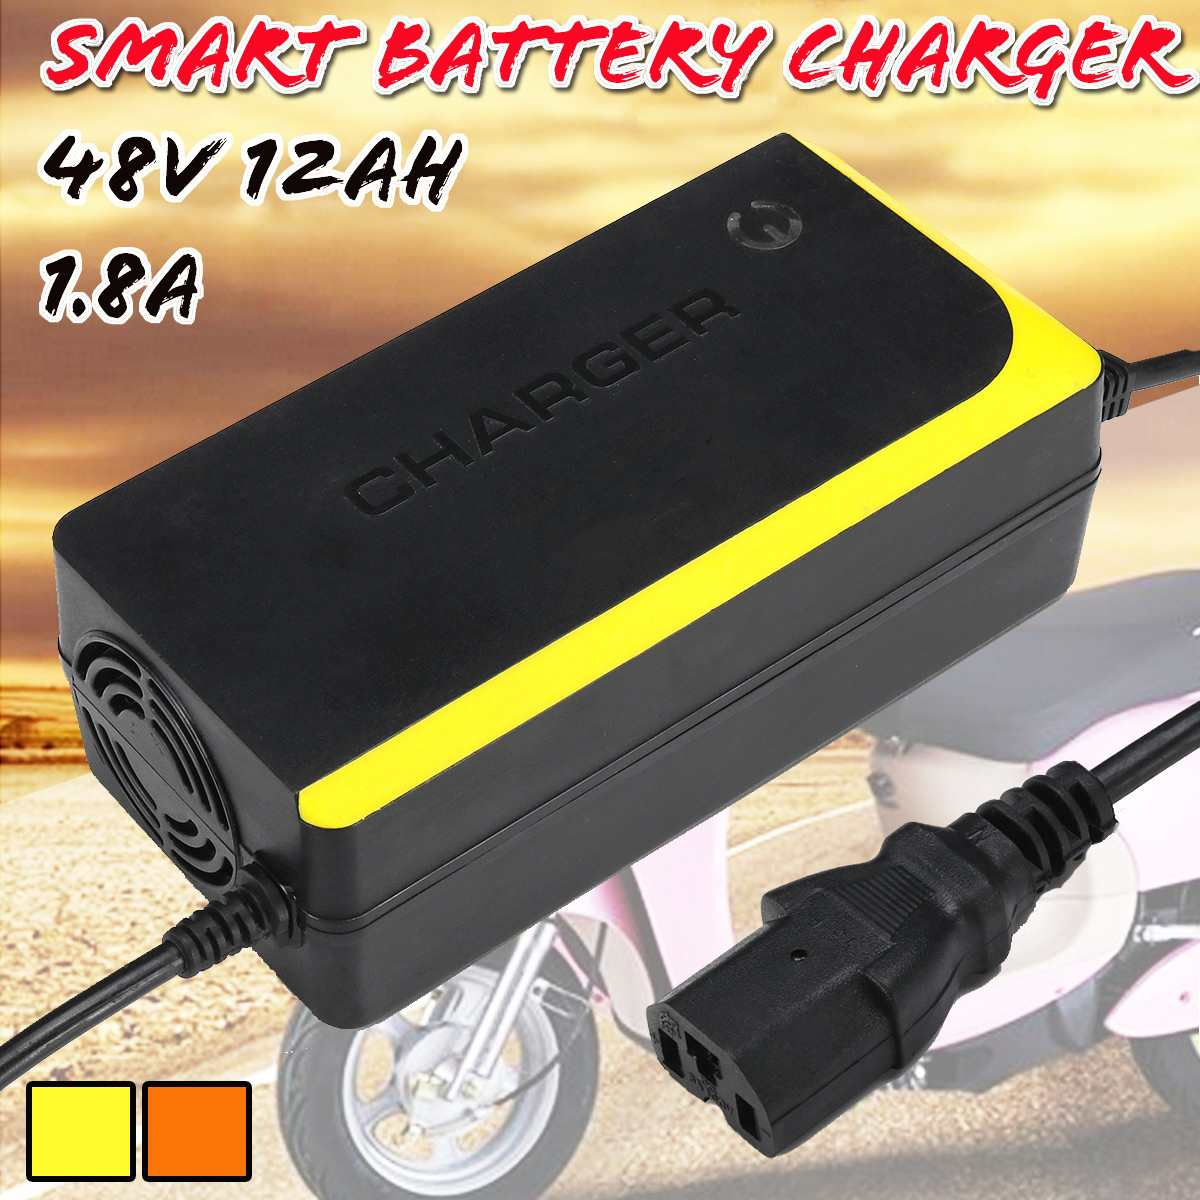 48V 12AH Electric Bicycle Bike Scooters Motorcycle Charger Smart Power Supply Lead Acid Battery Charger 48V 1.8A 12AH